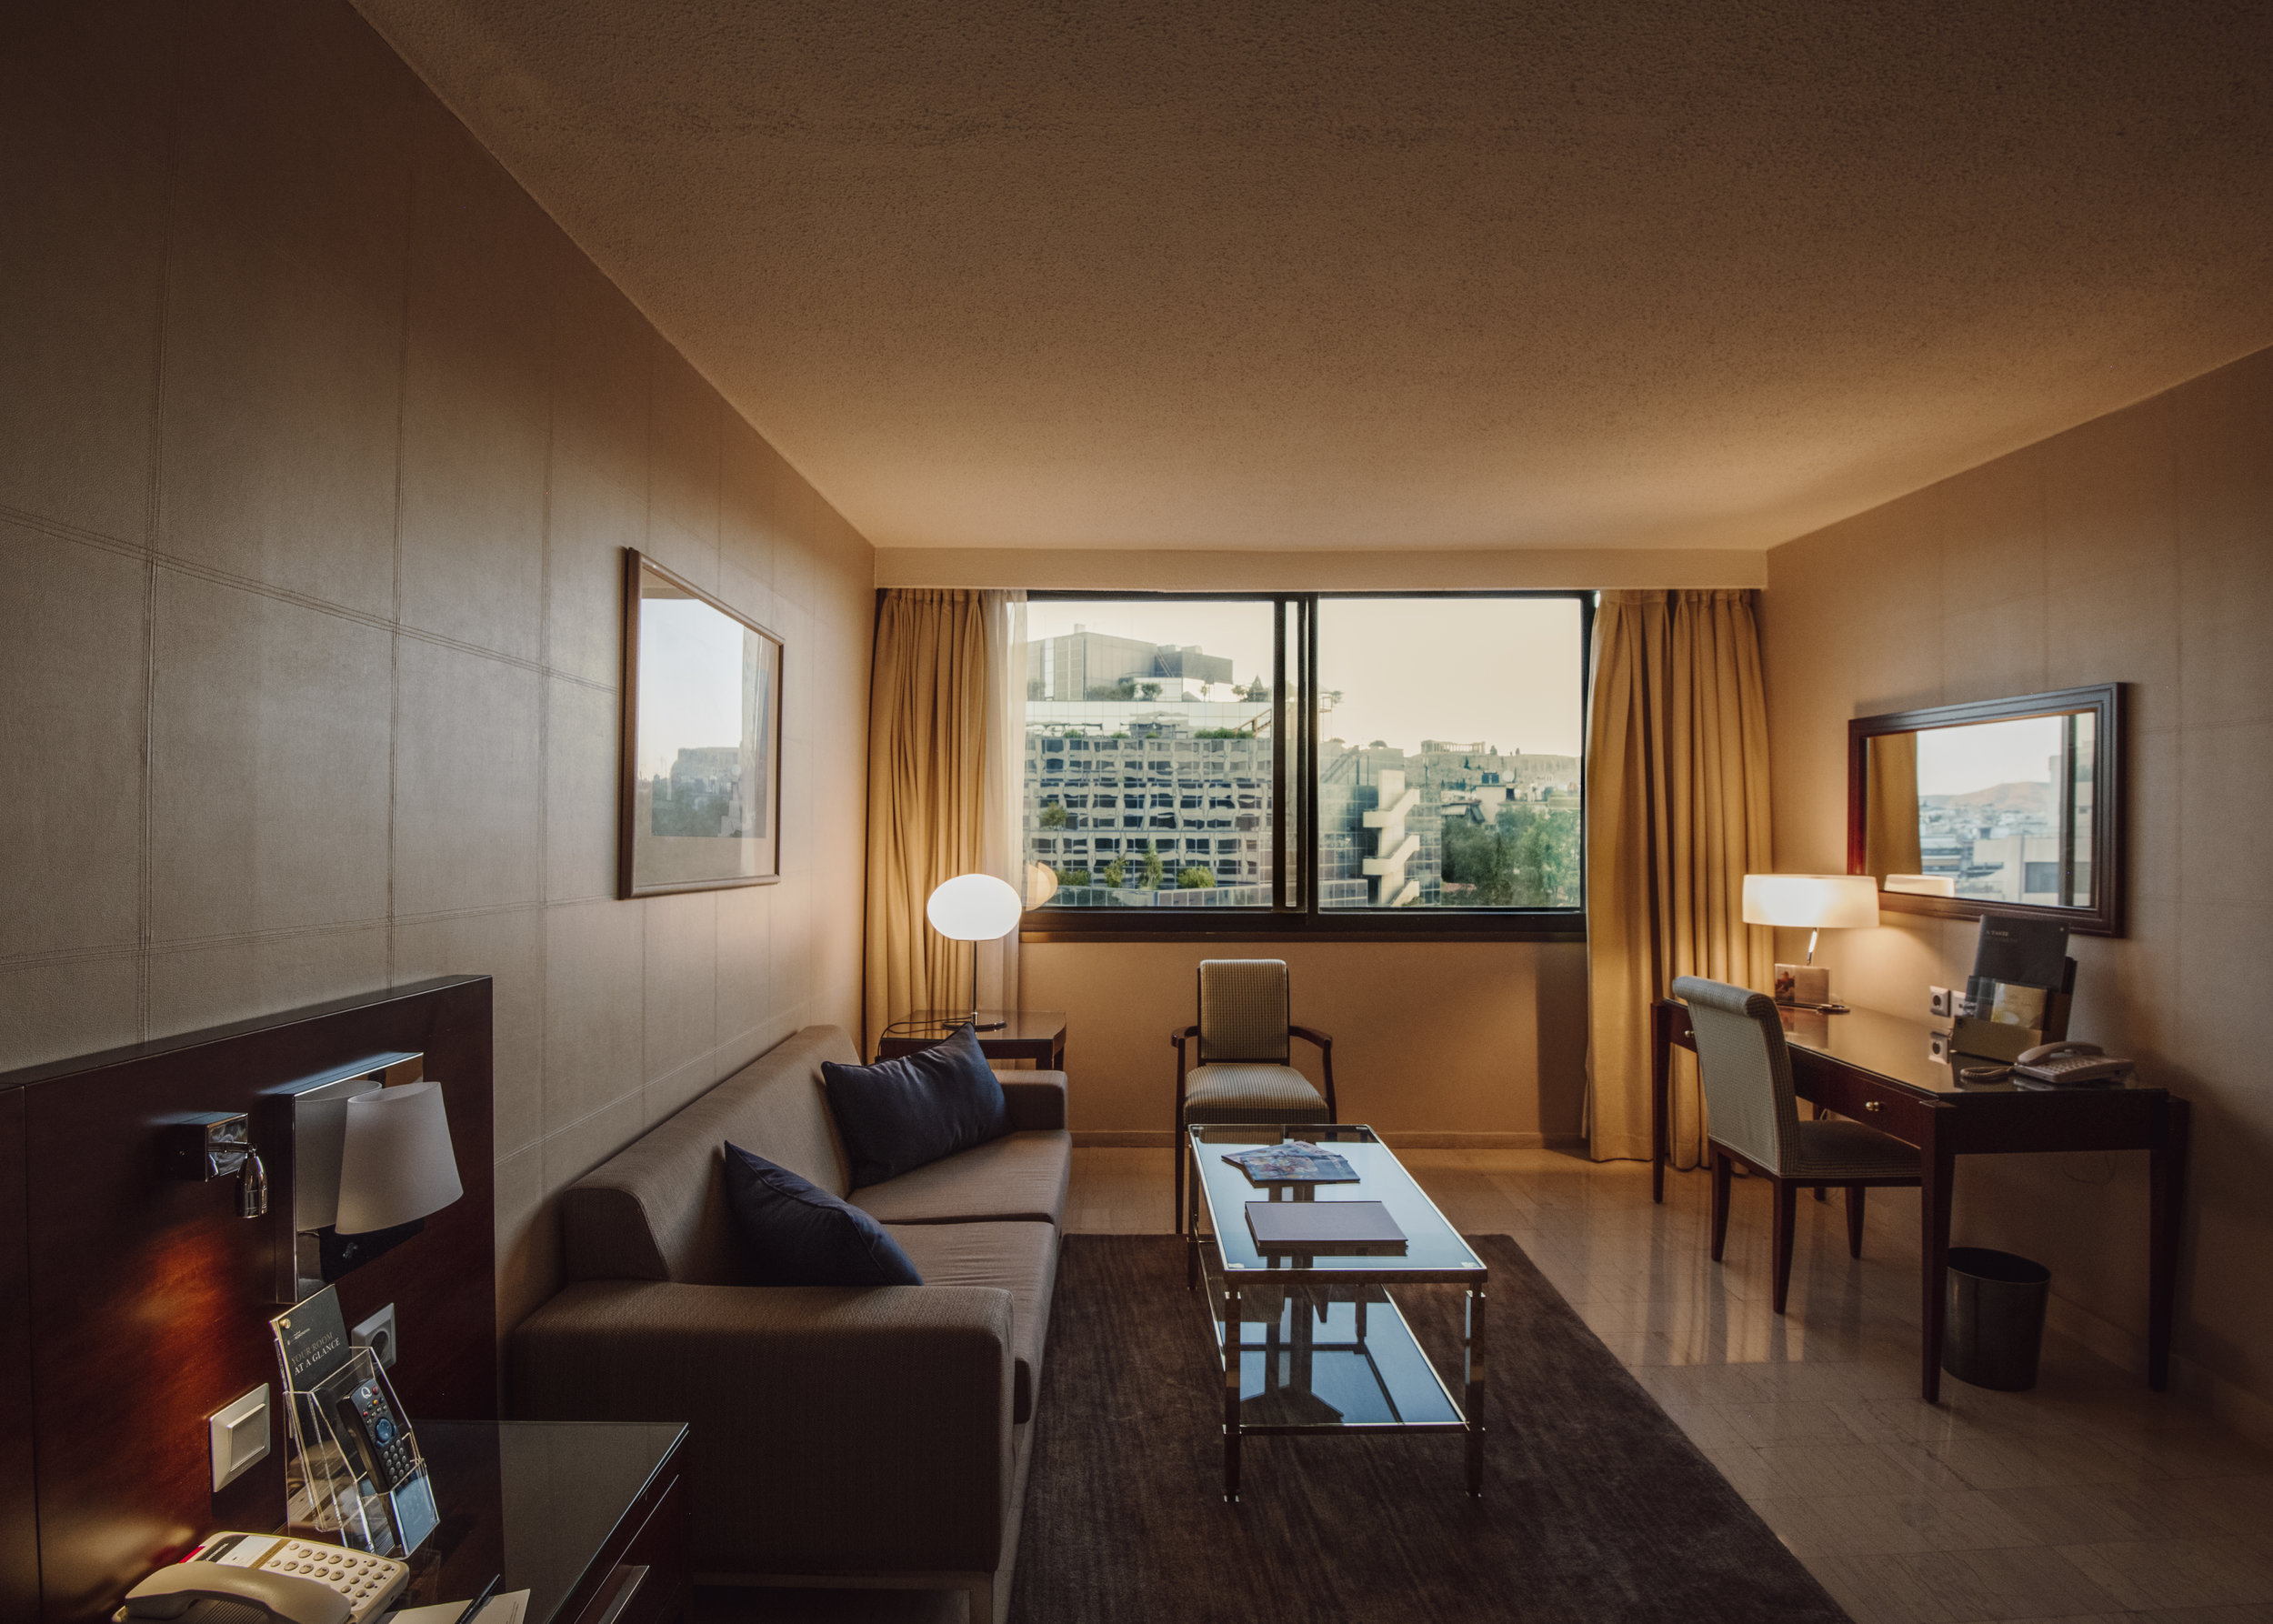 Intercontinental Hotel Athens | Nicole Bissey Photography 05.JPG